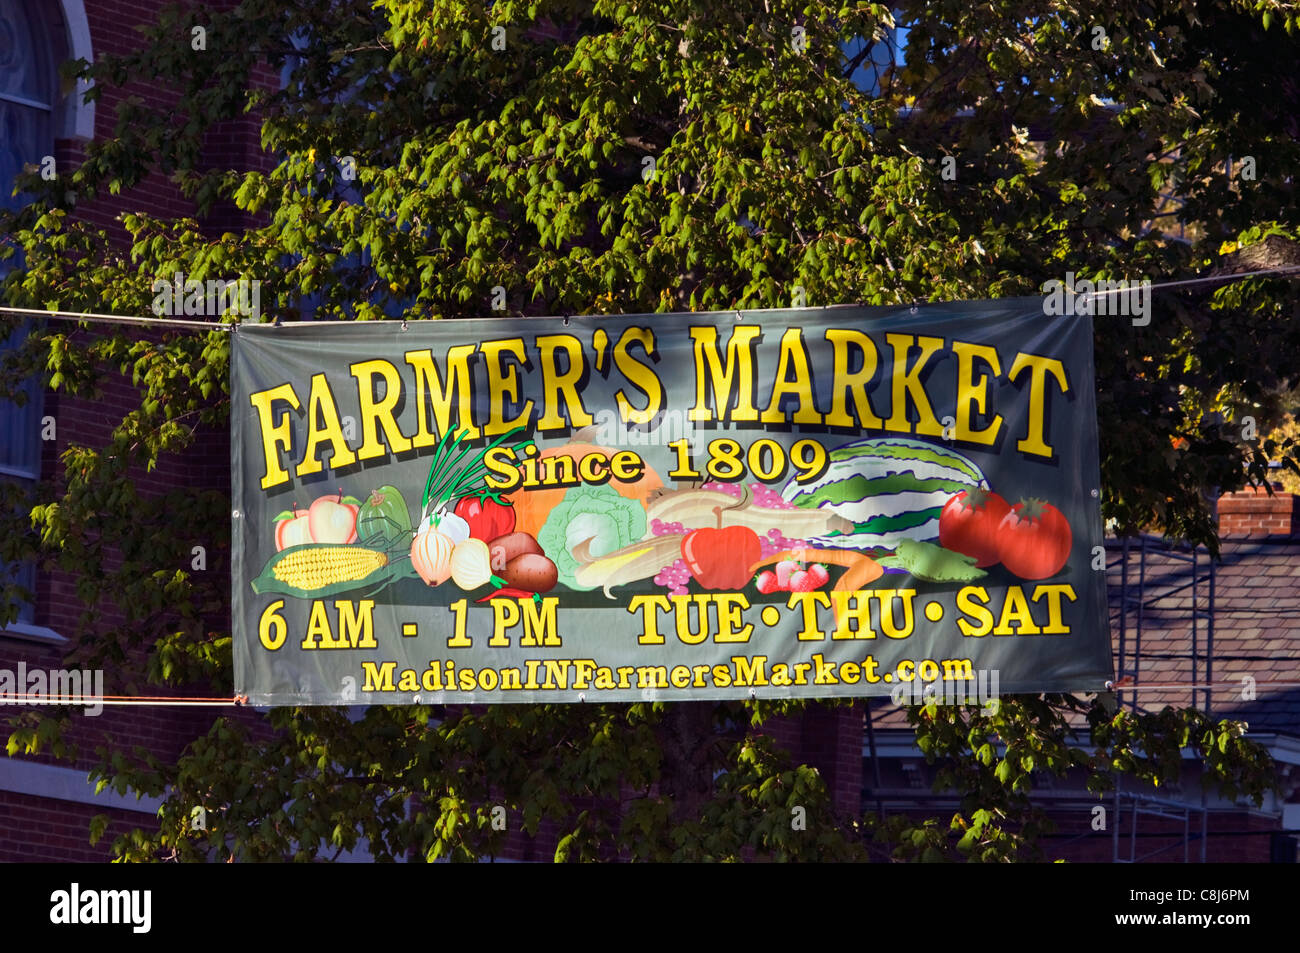 Farmer's Market Banner in Madison, Indiana - Stock Image